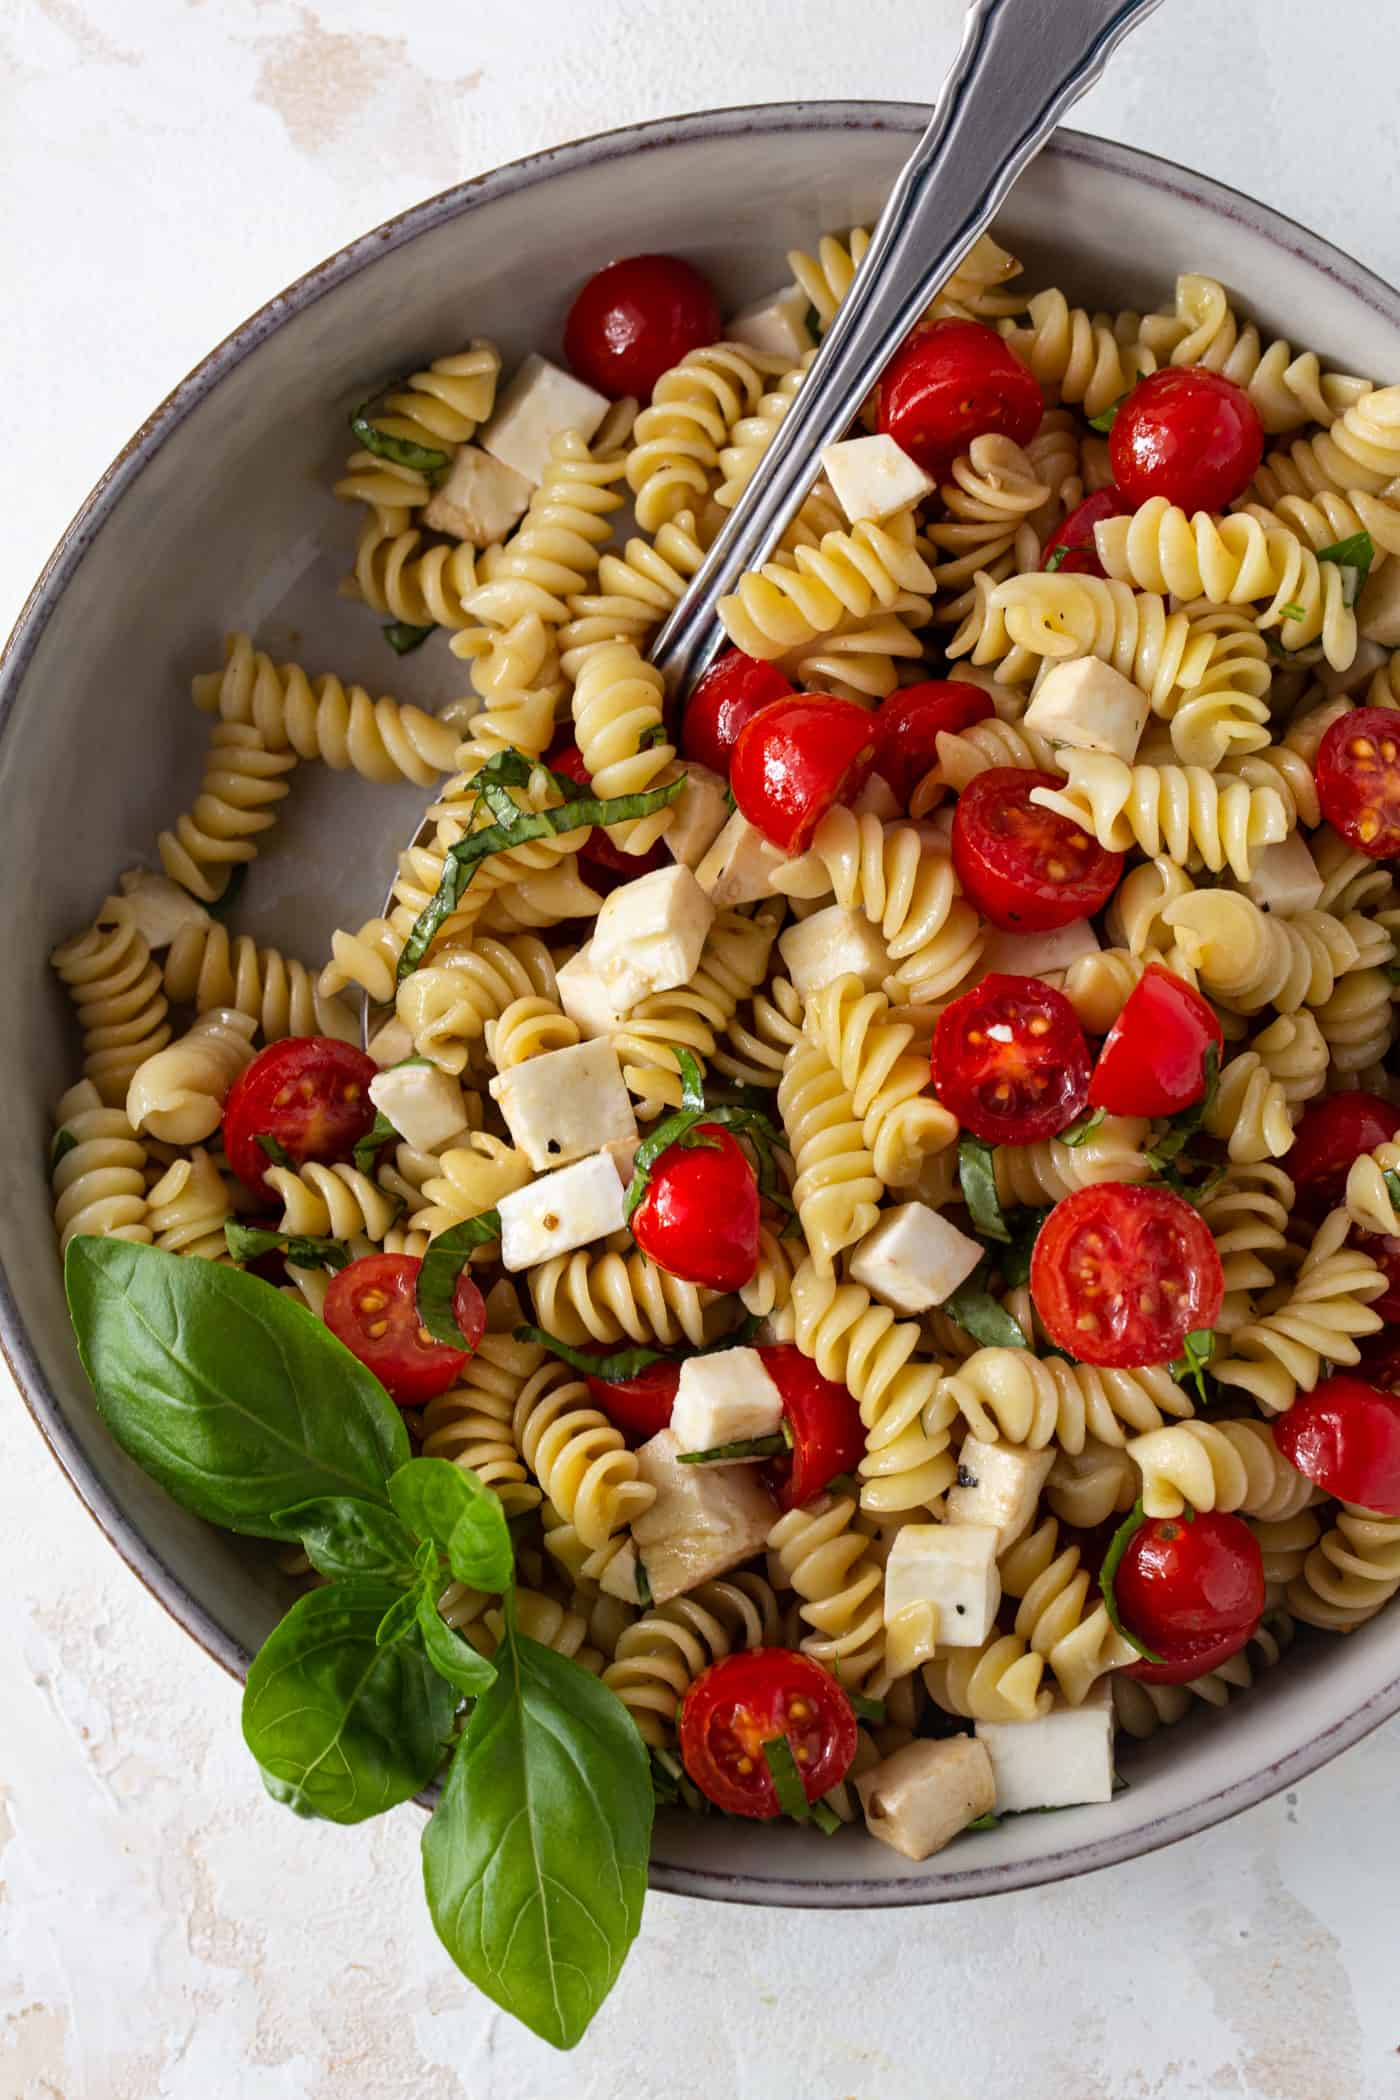 Top down image of caprese pasta salad in a gray bowl garnished with fresh basil leaves.